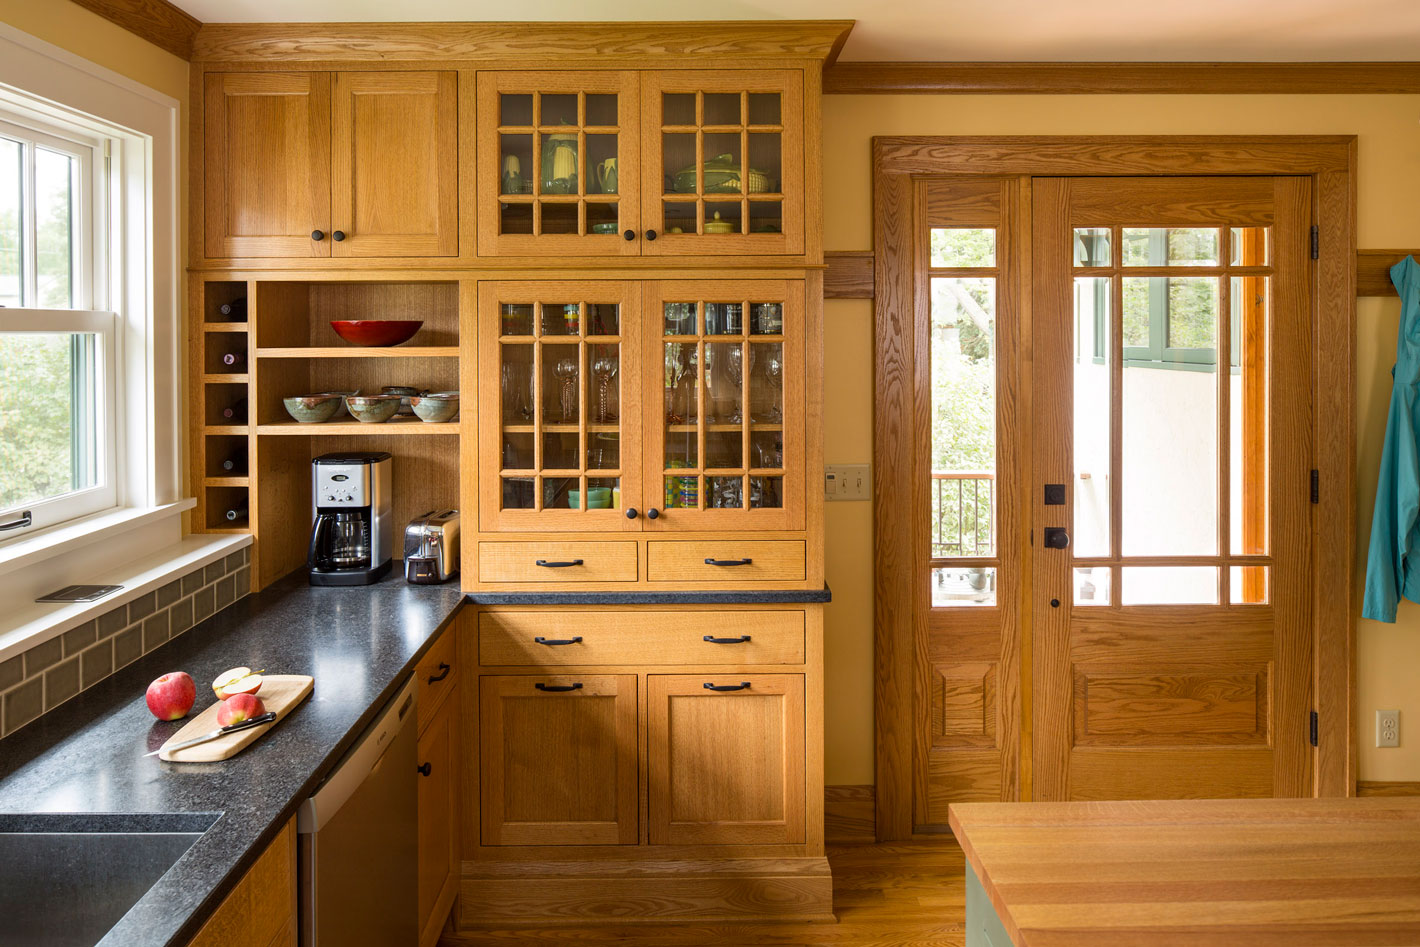 View across kitchen to beautiful cabinets